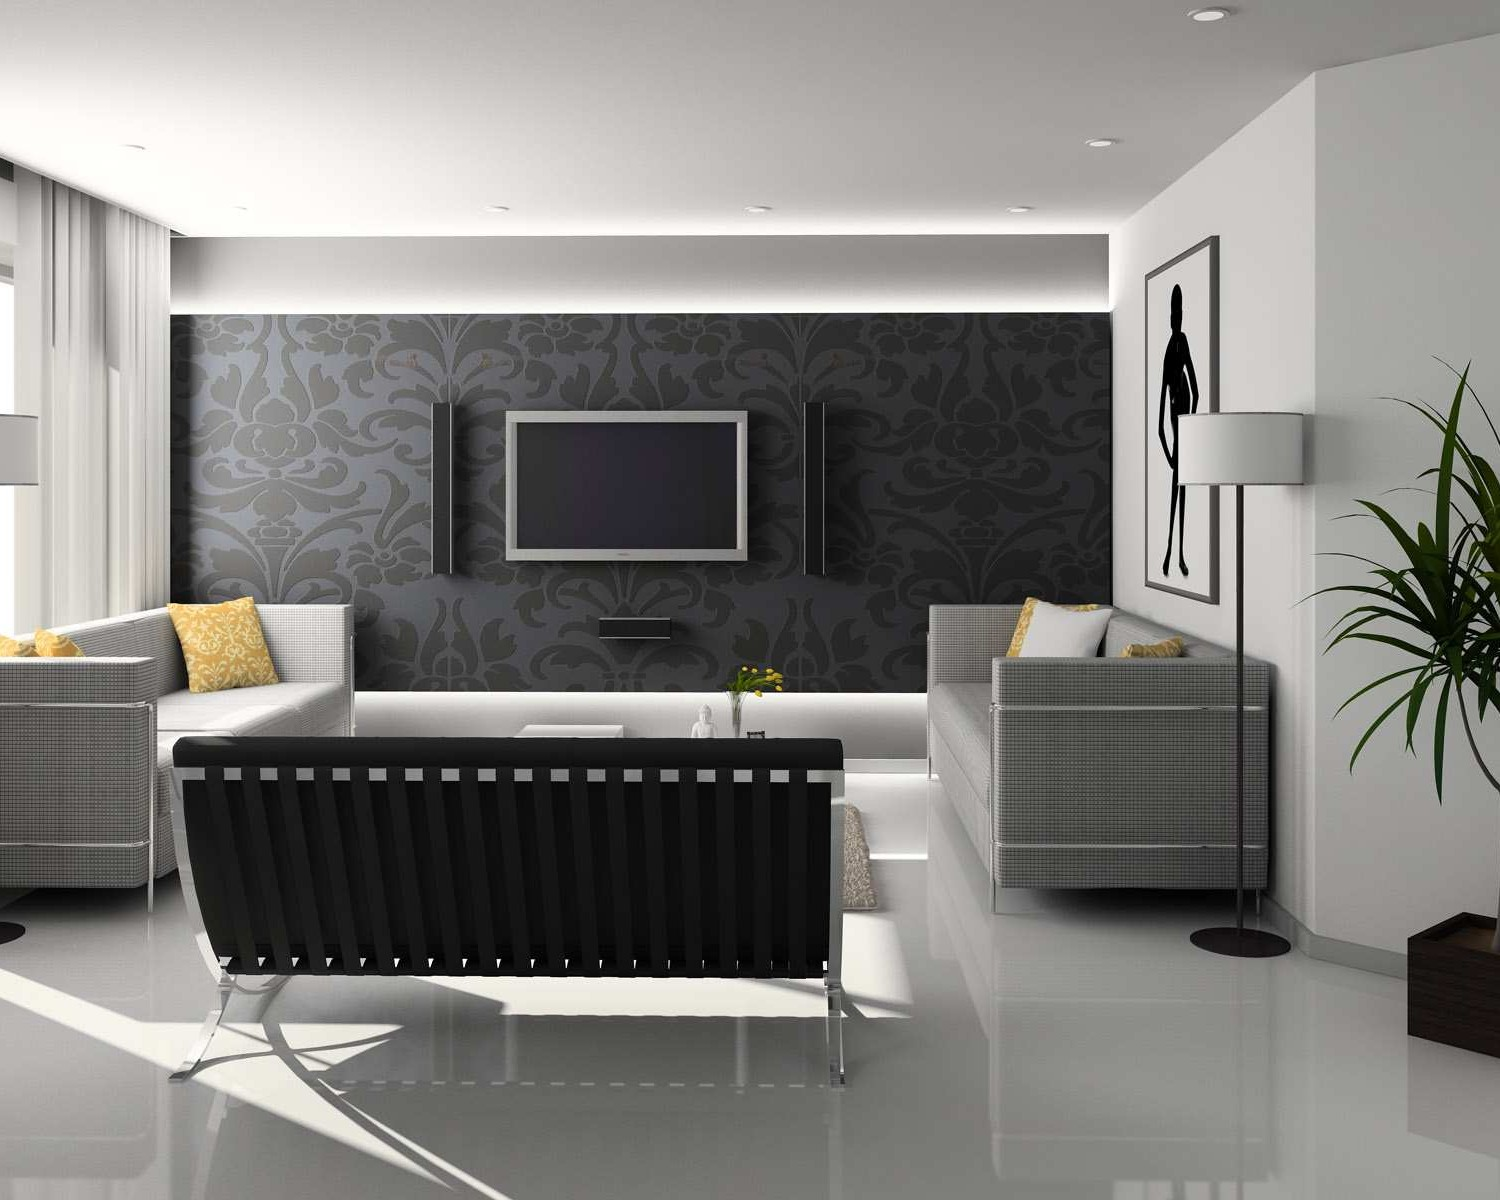 17 Inspiring Wonderful Black and White Contemporary Interior Designs Homesthetics 81